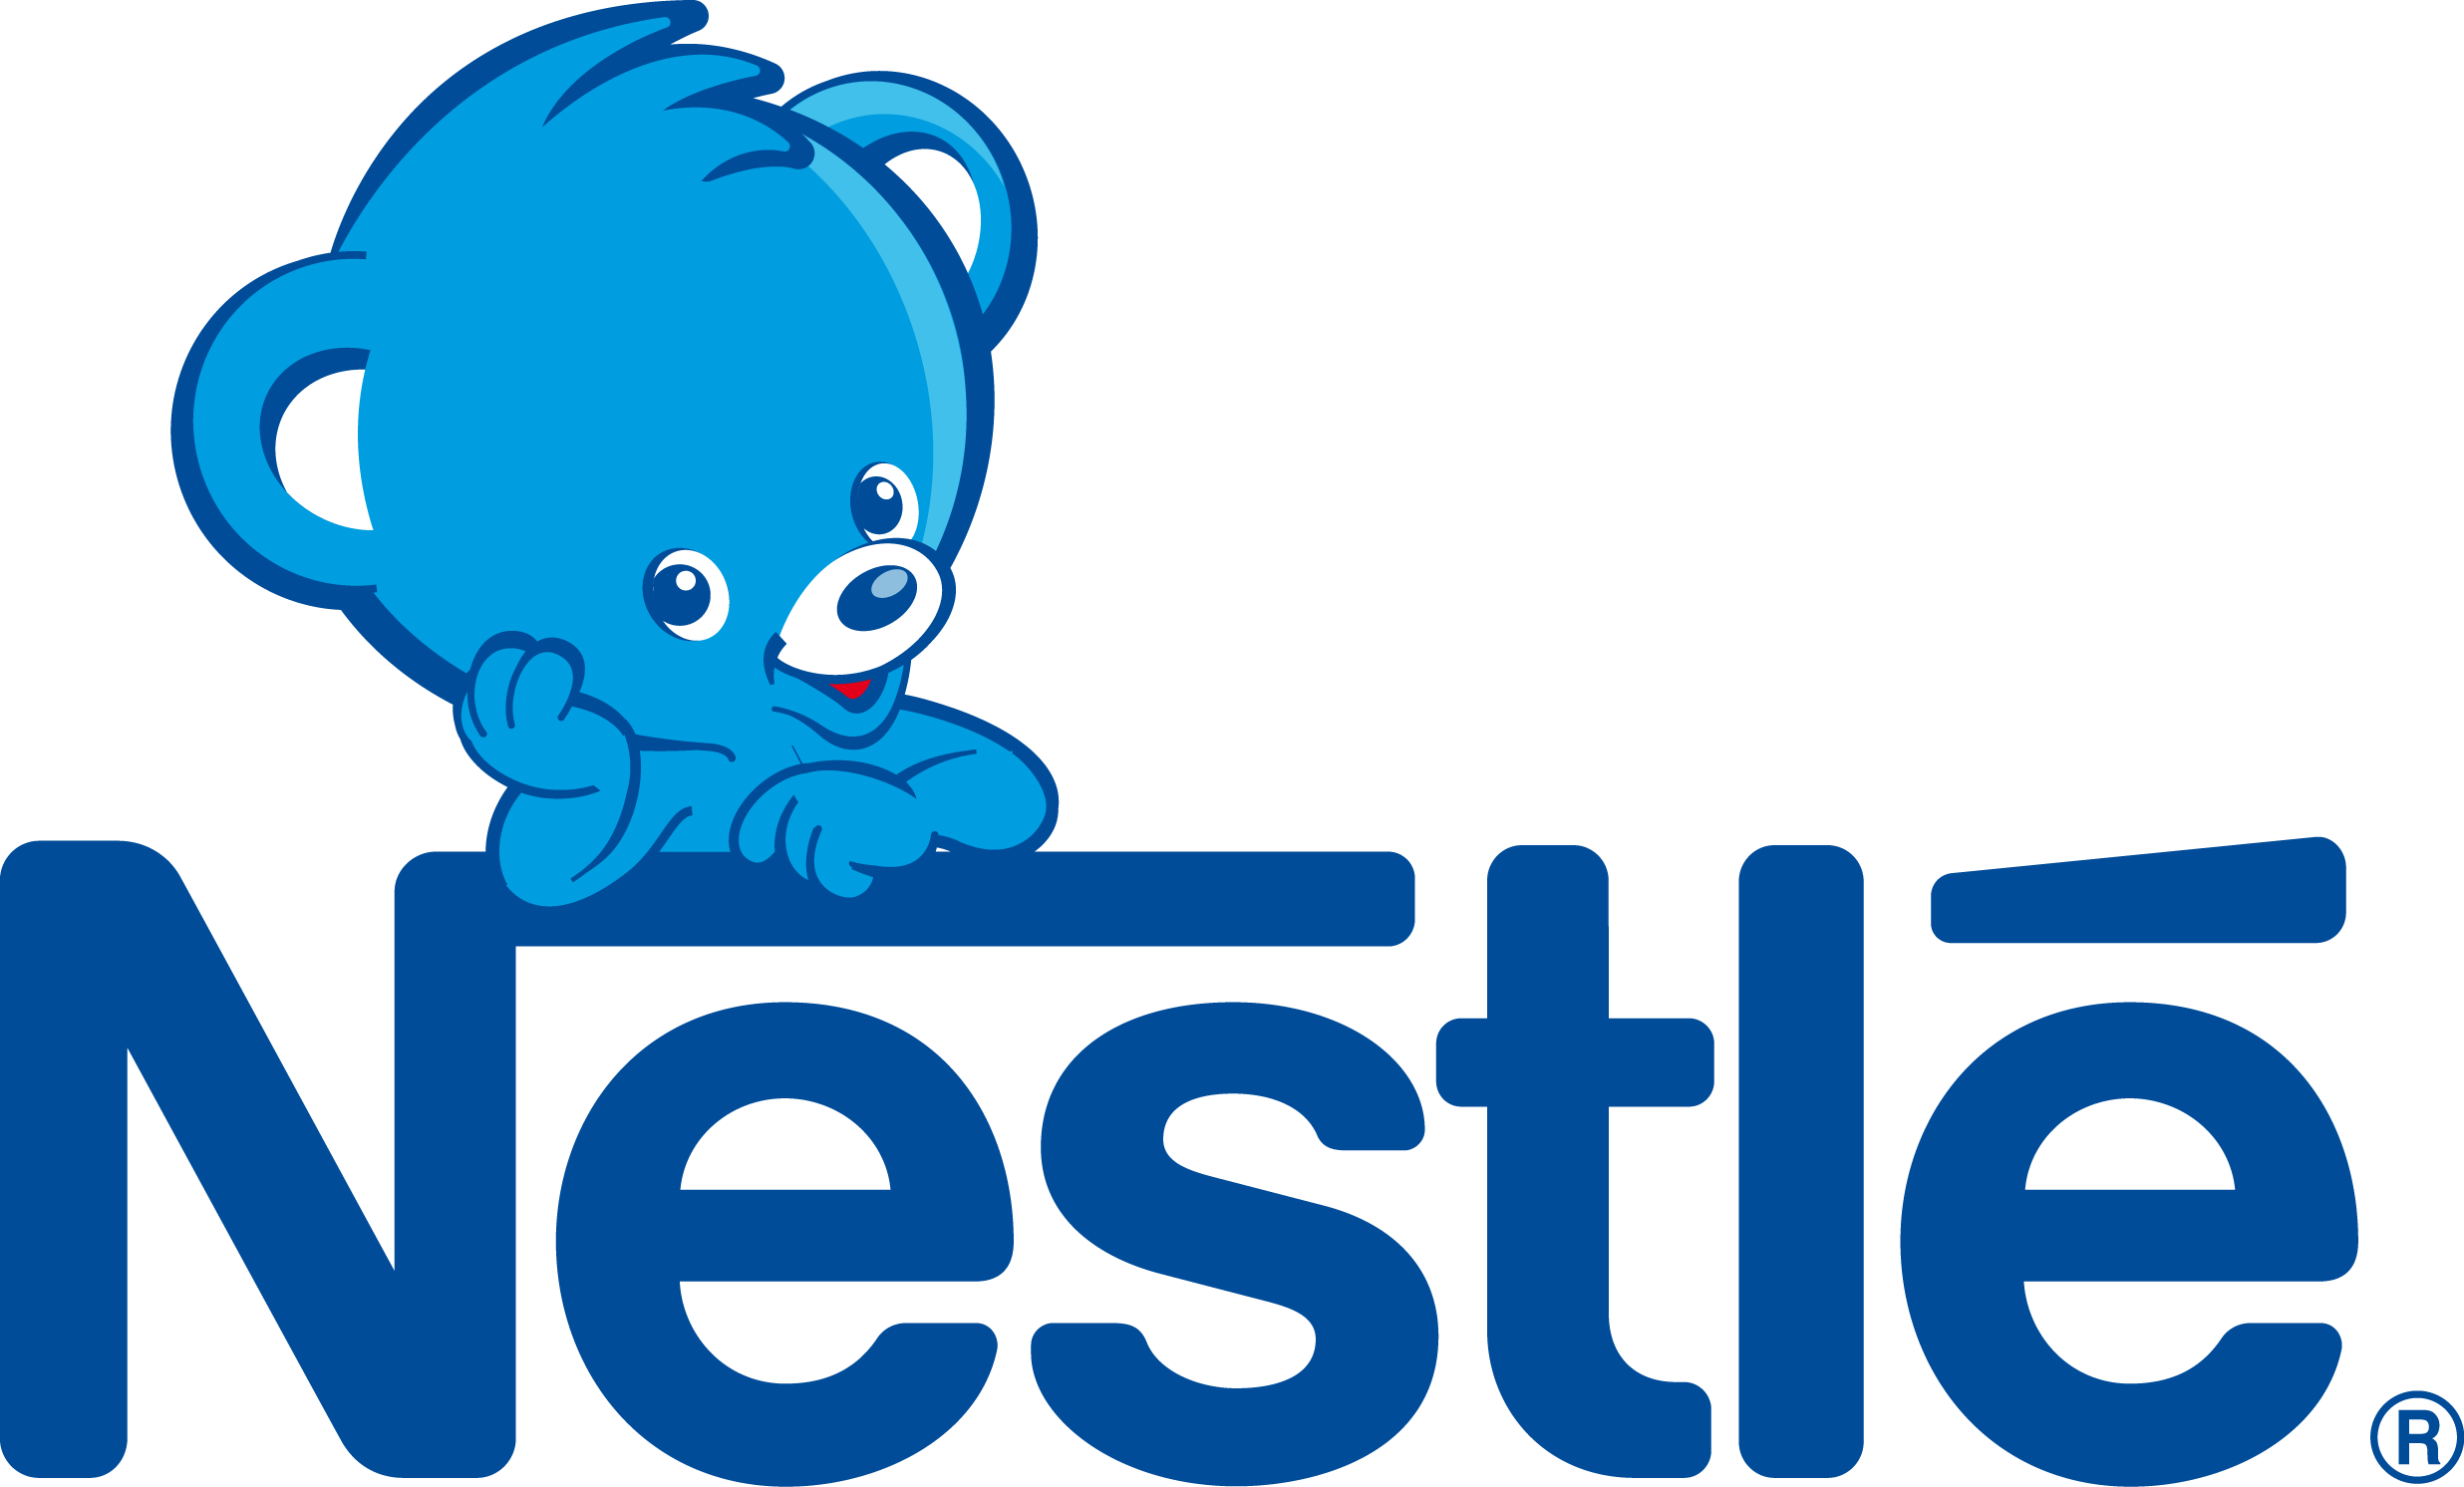 the ethics of marketing nestles infant A discussion of the morality of nestle's marketing strategy of encouraging the switch from breastfeeding to infant formula in third world countries.